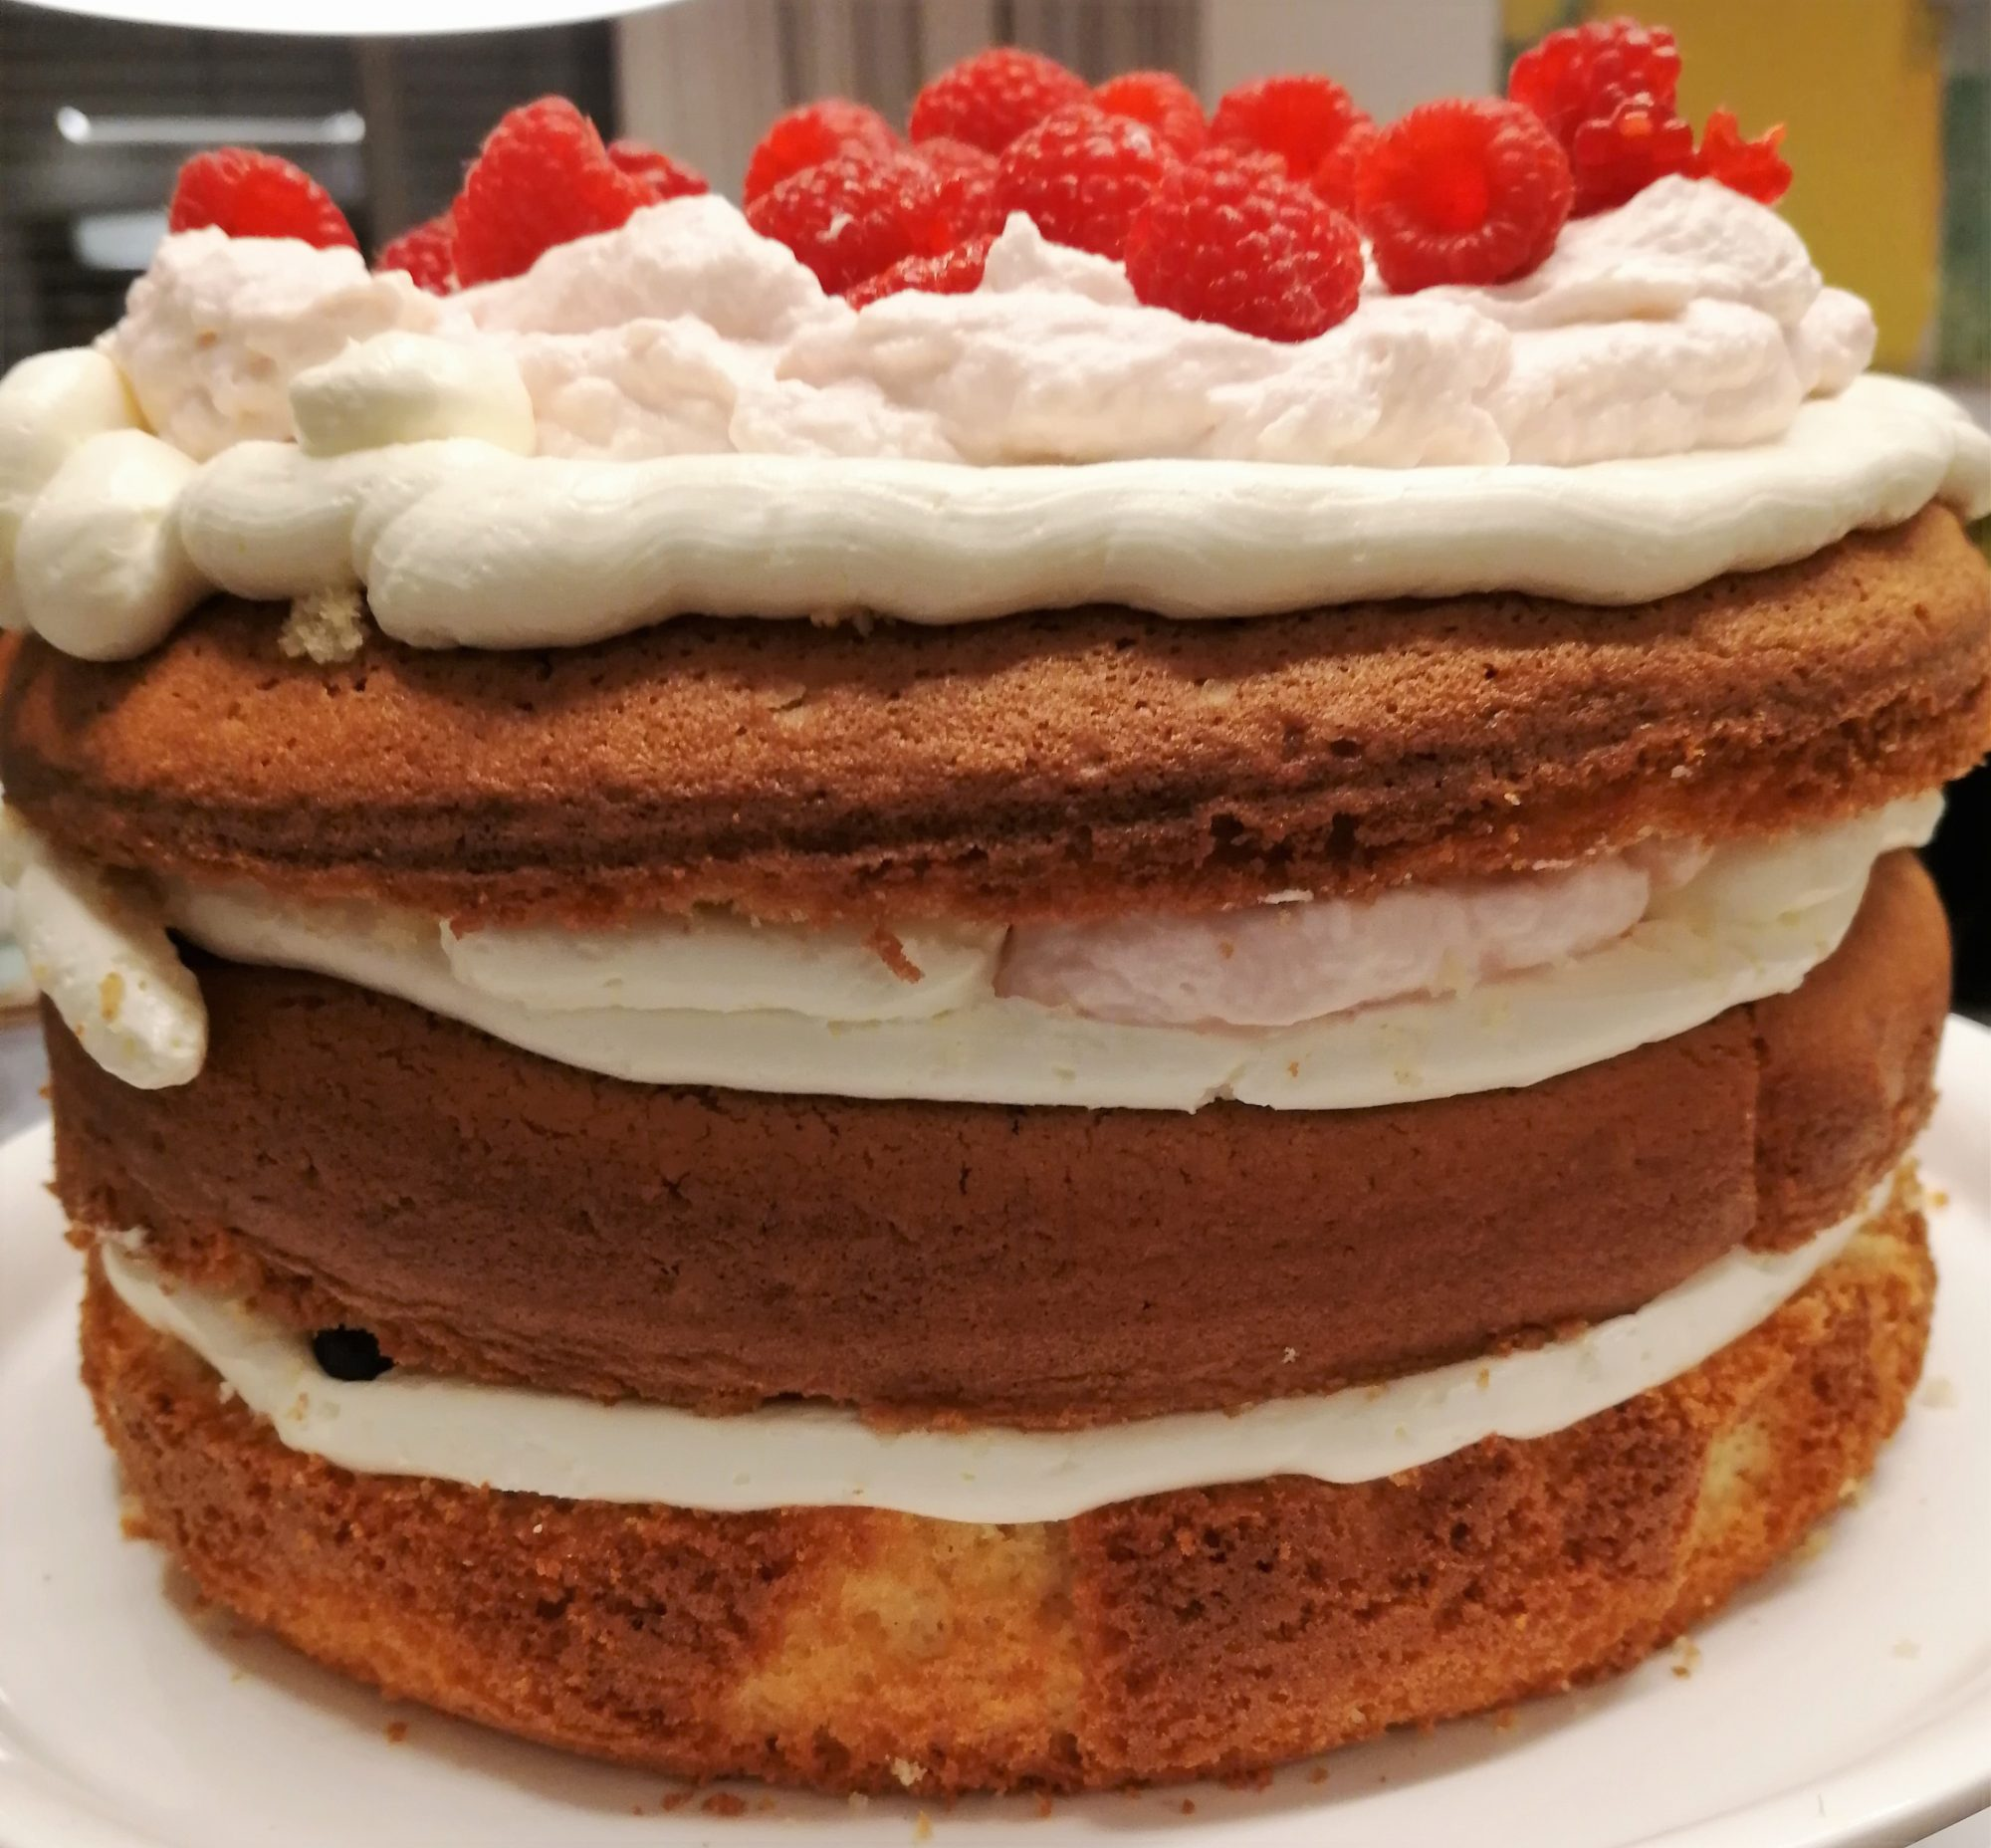 Semi Naked Cake stapeln mit Swiss Meringue Buttercreme